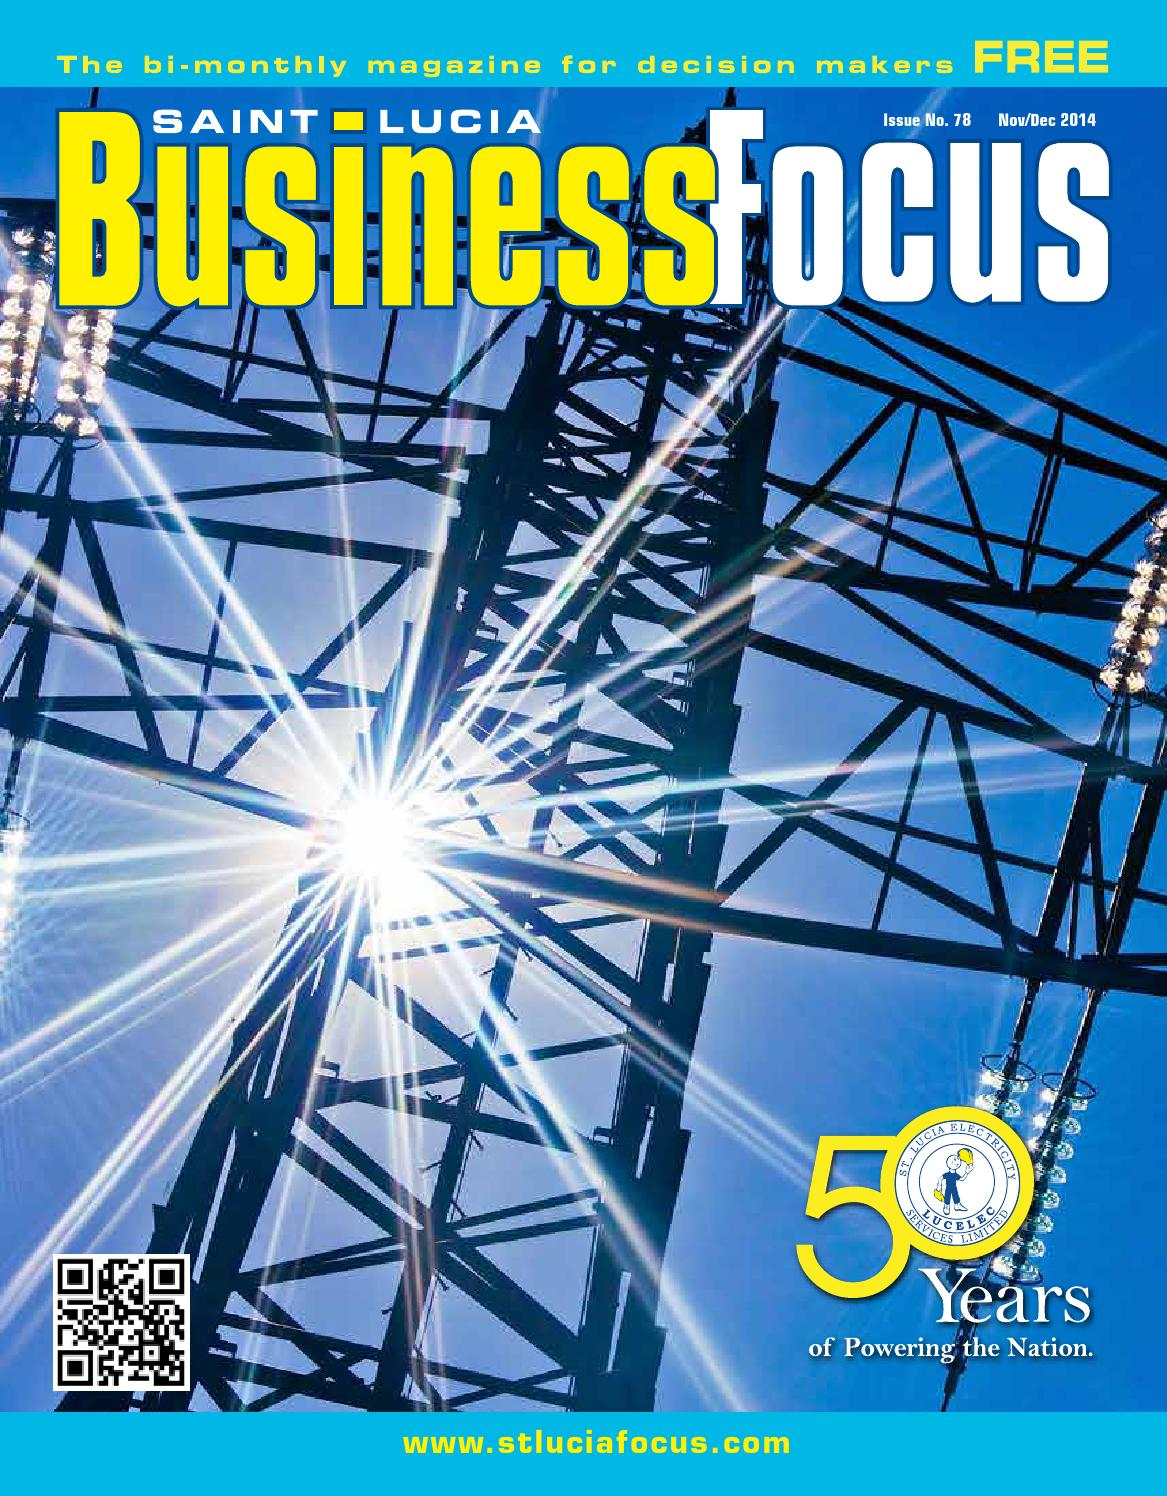 St lucia business focus 78 by ams st lucia issuu malvernweather Gallery